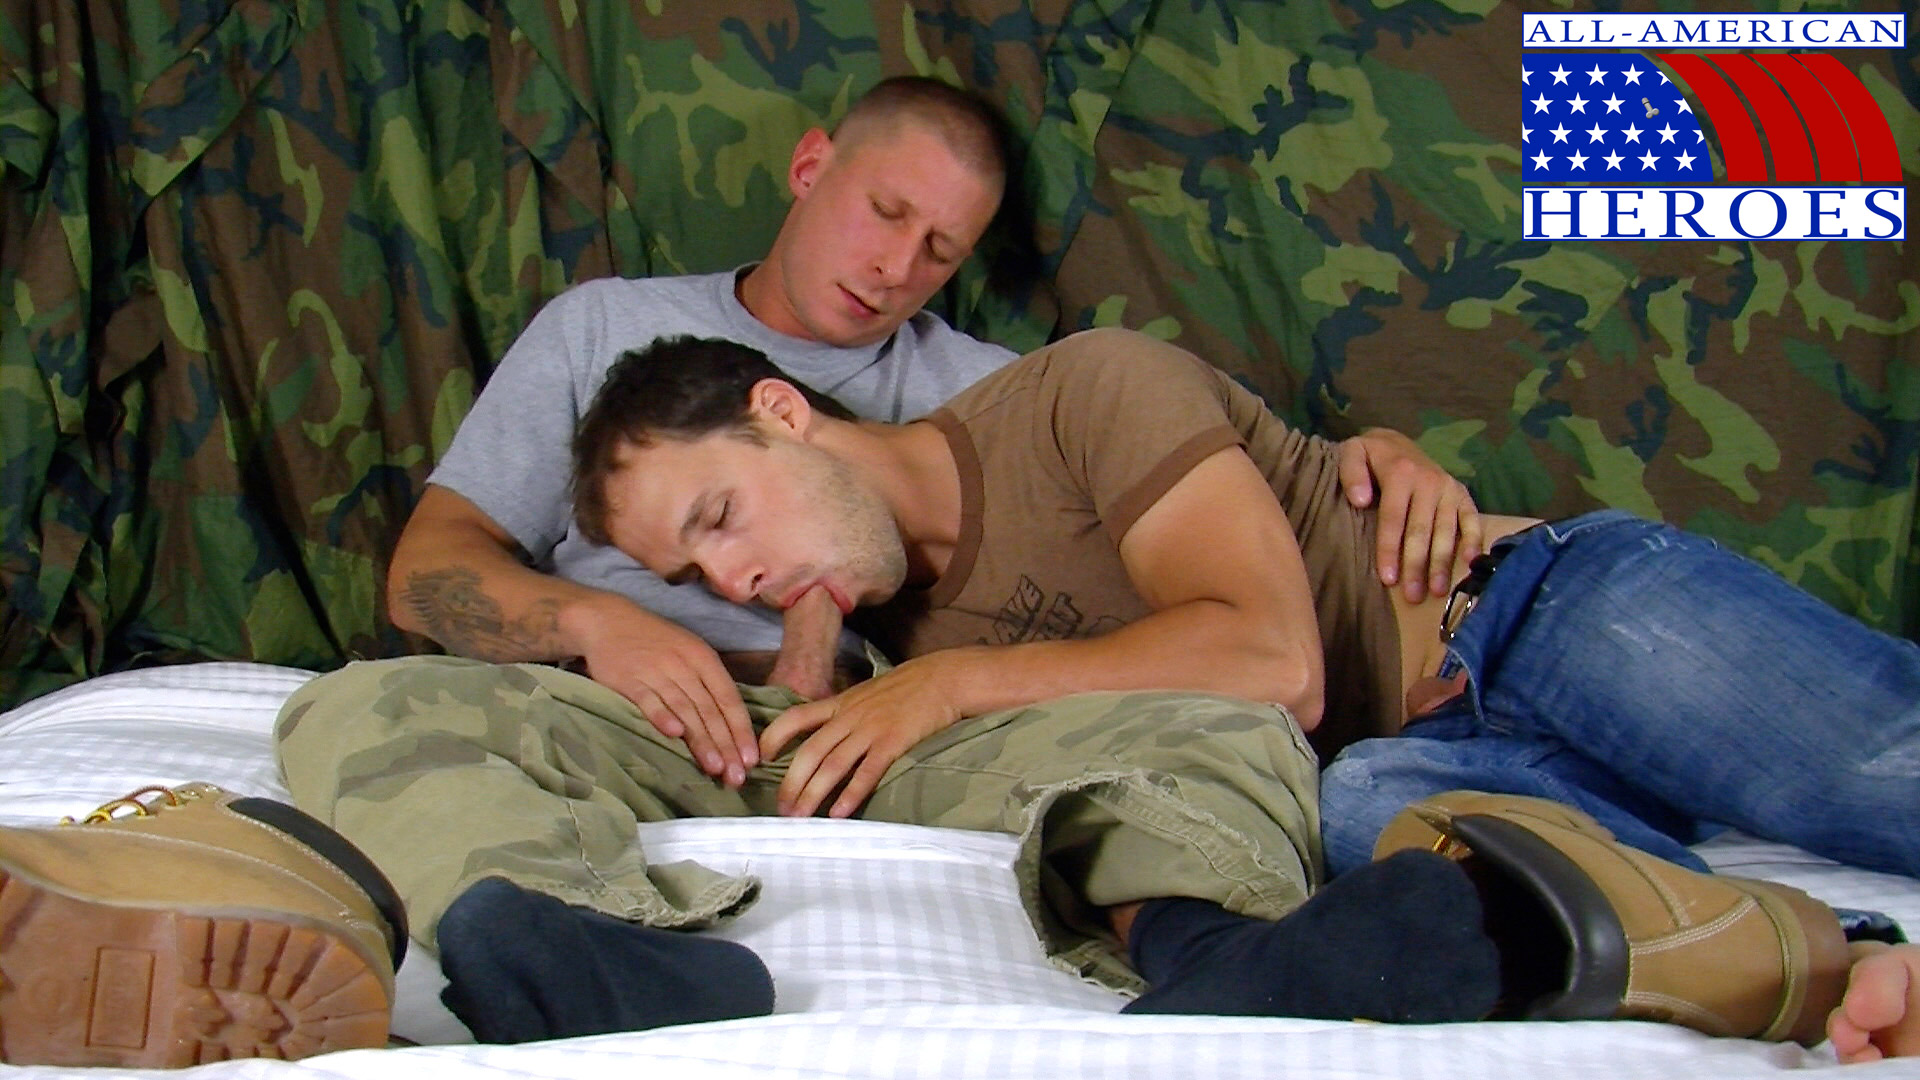 All-American-Hereos-Petty-Officer-Chris-fuck-Private-Tyler-13 Amateur Straight Navy Petty Officer Fucks a Straight Army Private